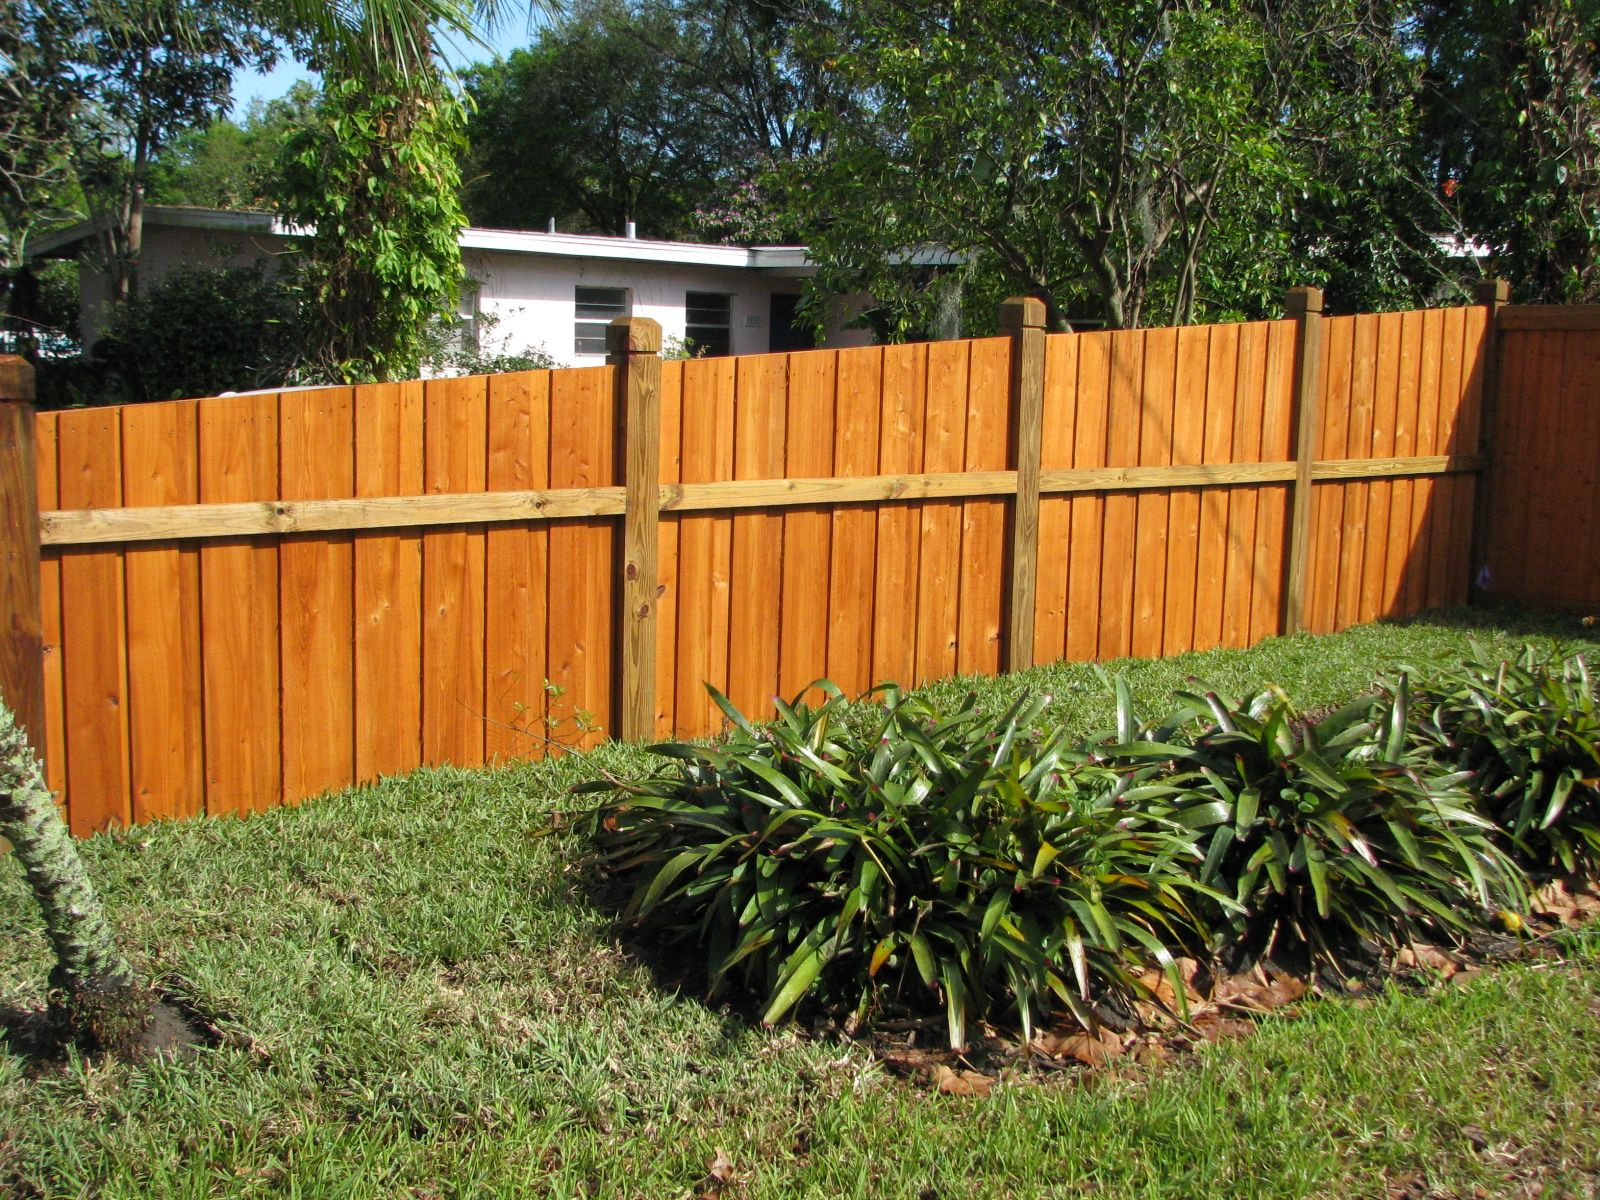 Custom Wood Privacy Fence On A Slope By Mossy Oak Fence